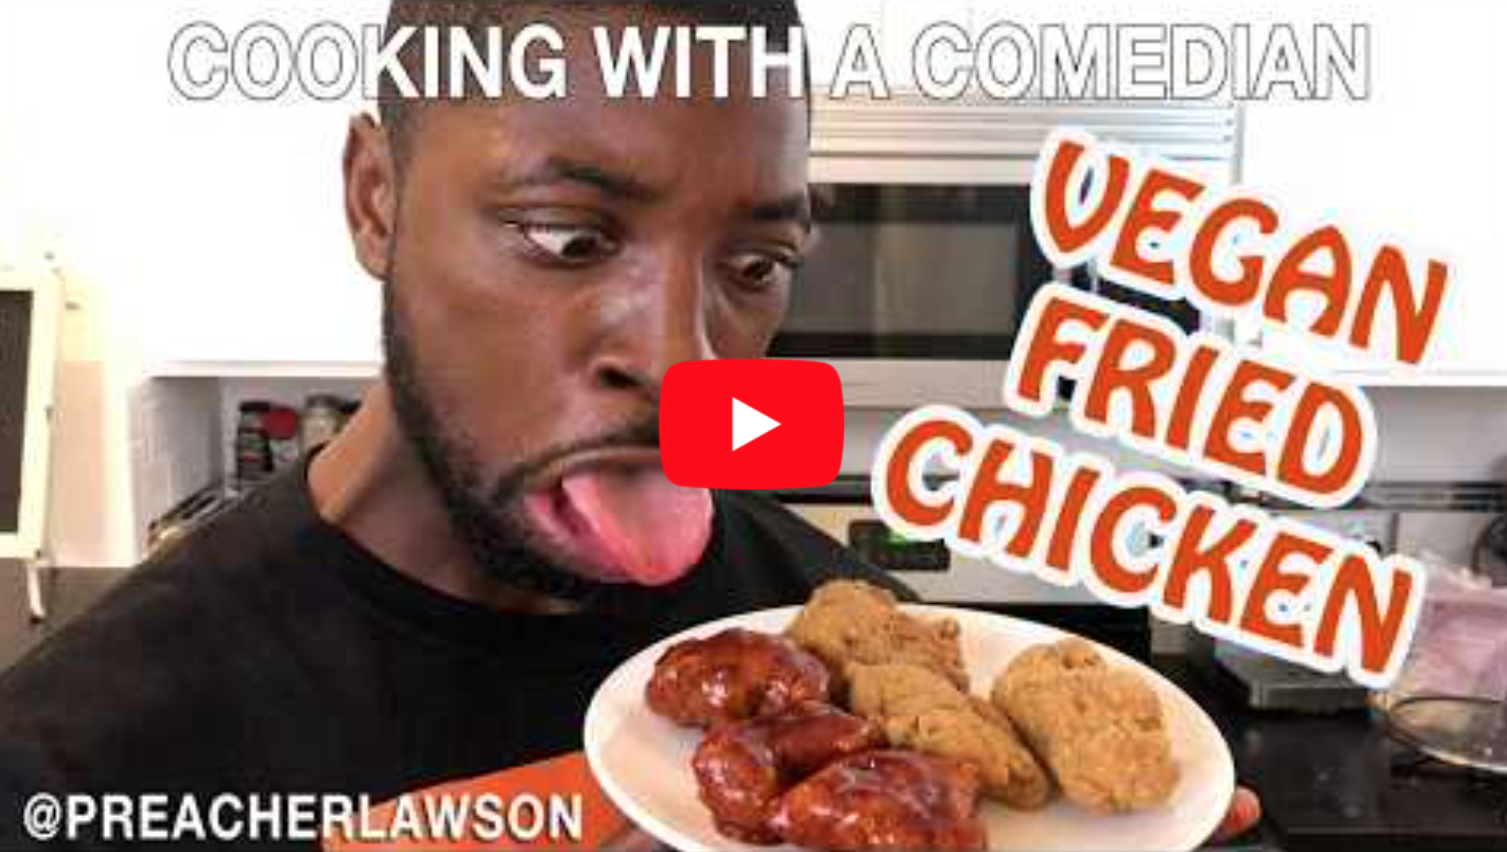 How To Make Vegan Fried Chicken - Cooking With A Comedian @PreacherLawson | VeganFlix